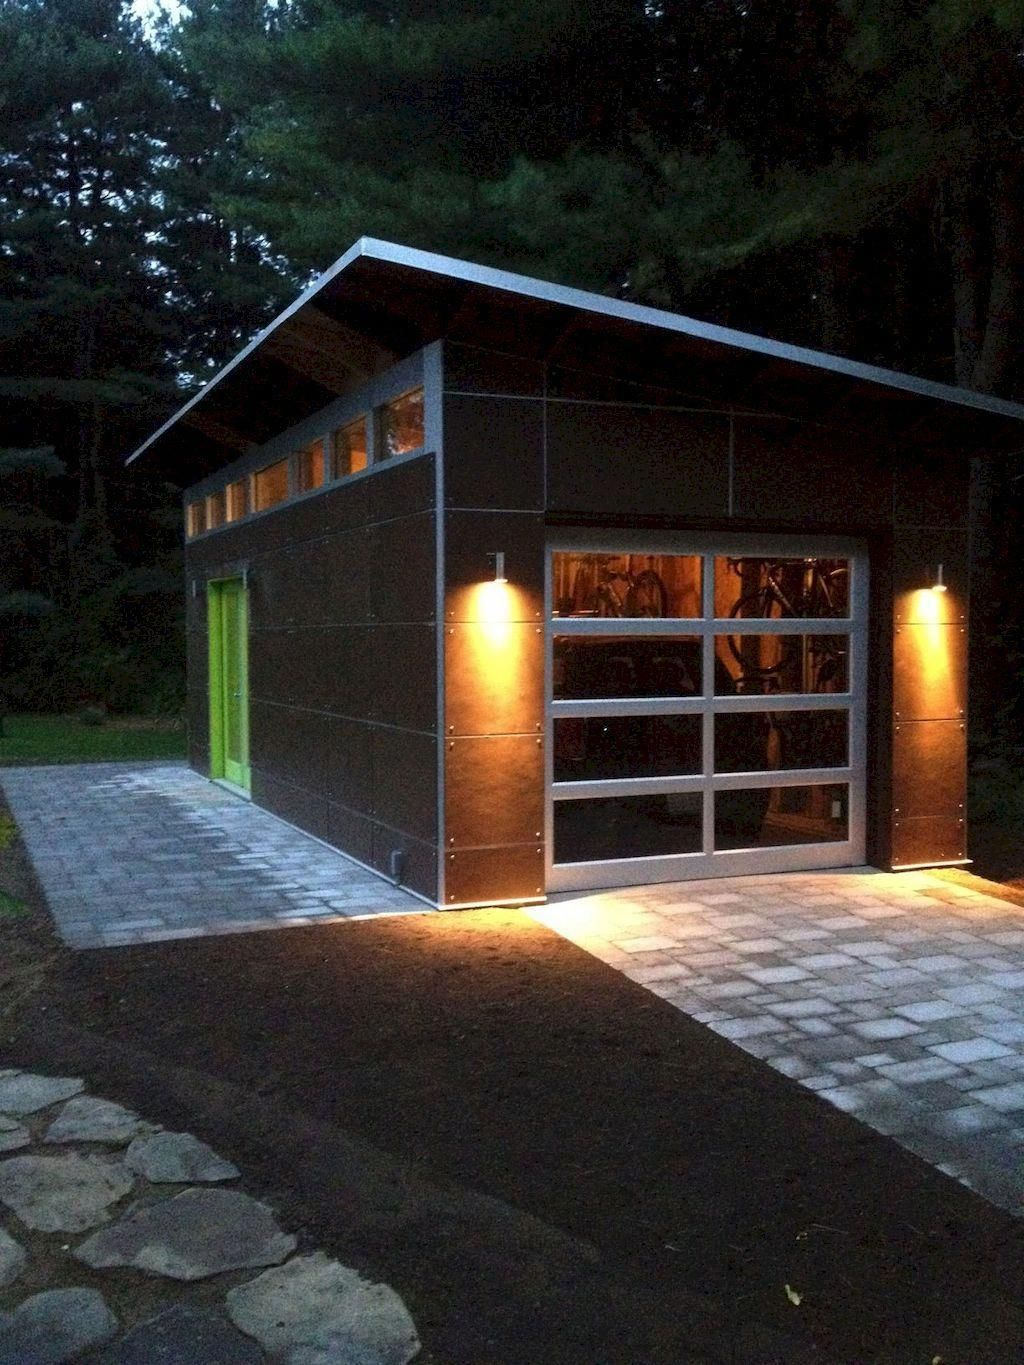 Garage Storage Bin Ideas Detached Garage Interior Ideas Gas Station Themed Garage 20190622 Garage Design Backyard Studio Garage Door Design